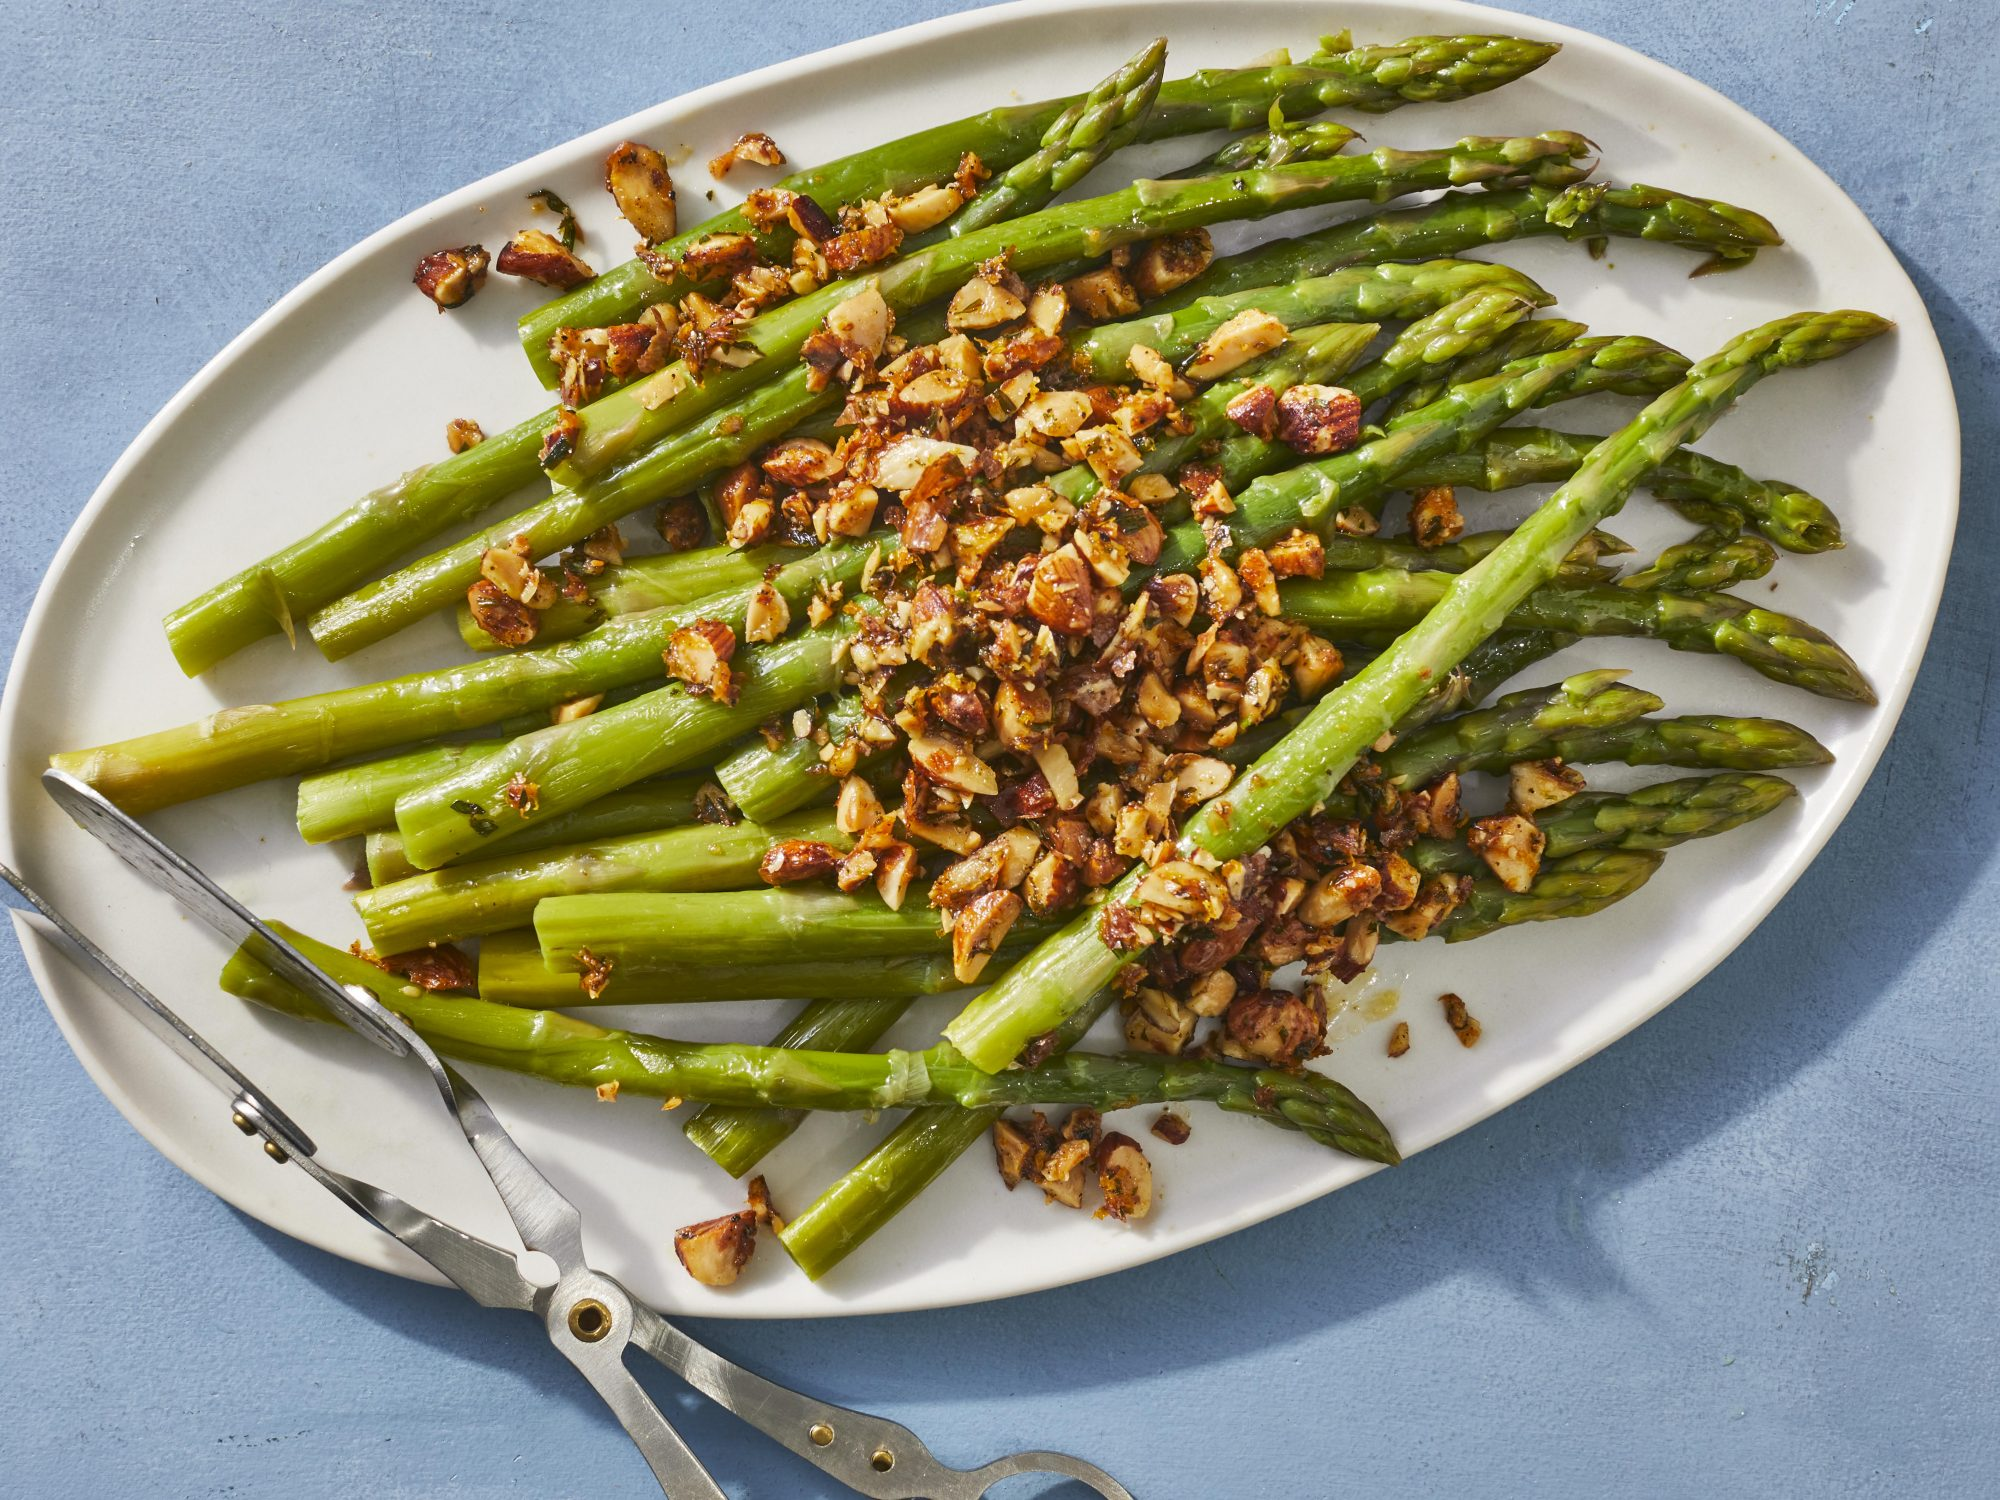 mr - Instant Pot Asparagus Image